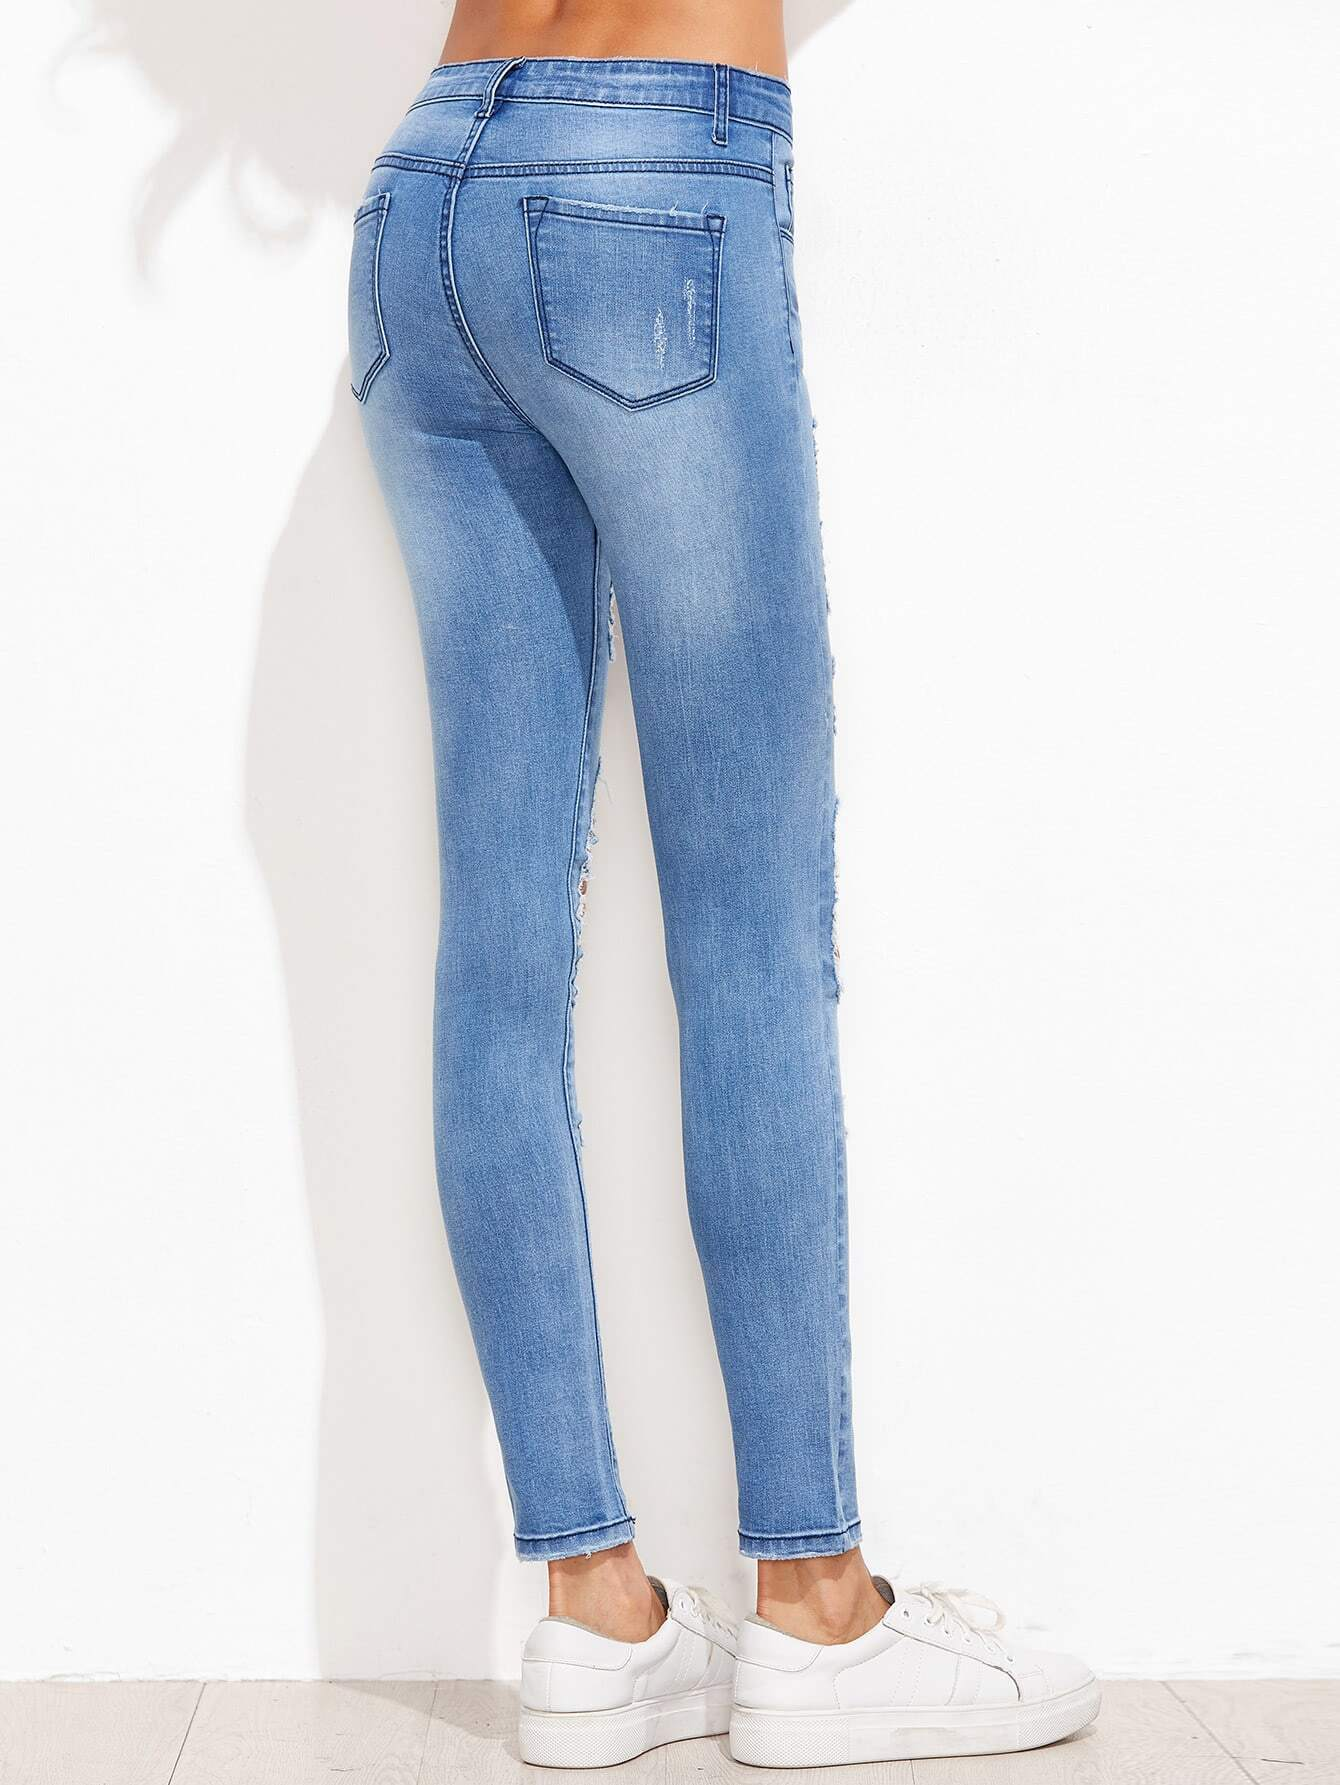 If skinny jeans aren't your thing, you should check out PacSun's collection of men's jeans including slim fit jeans and straight leg jeans. With a variety of fits available, guys know they can rely on PacSun to set them up with the best jeans around.